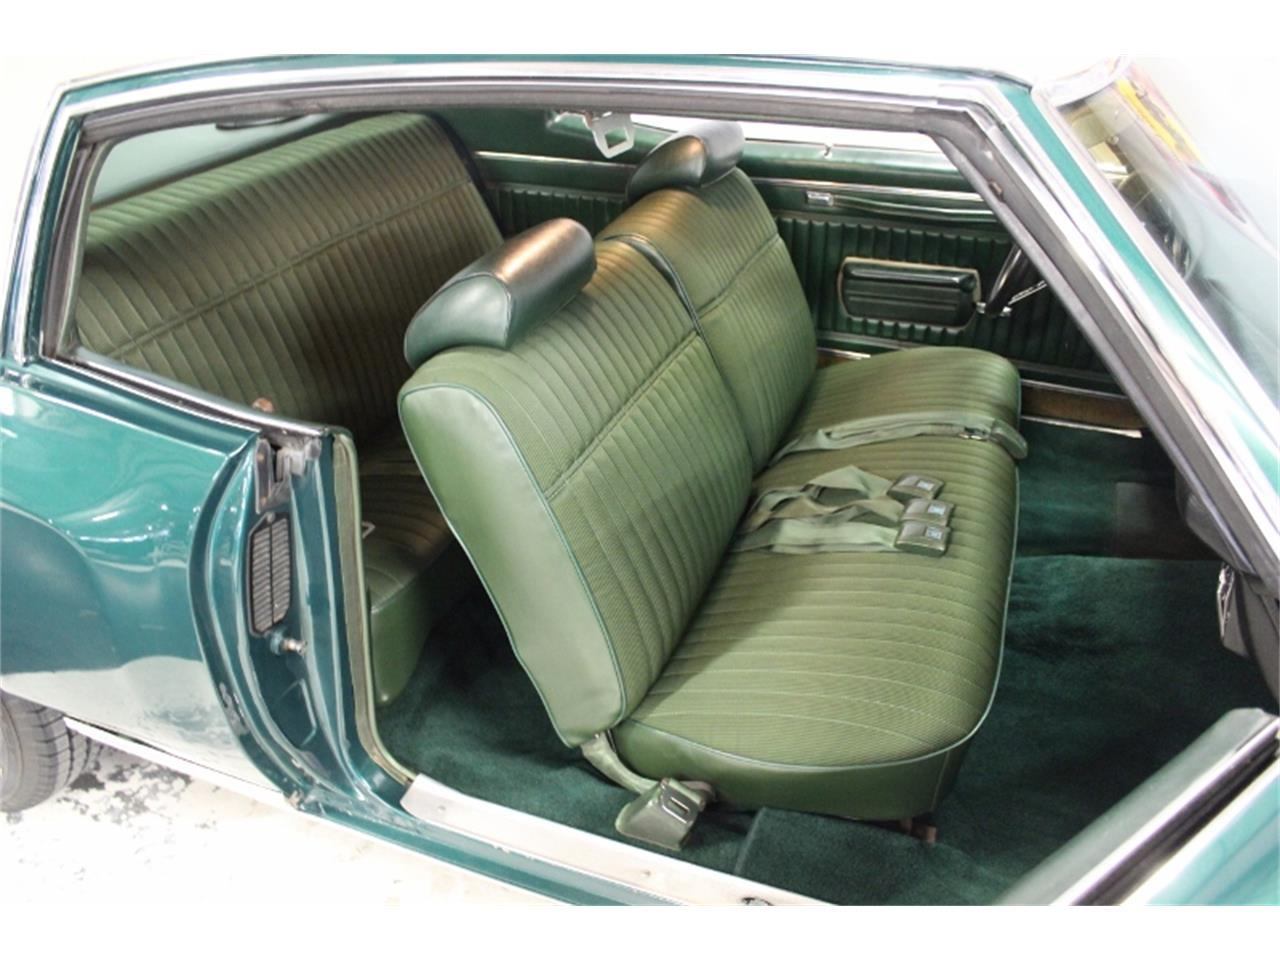 Large Picture of 1970 Chevrolet Monte Carlo located in North Carolina - $15,000.00 - PPCA